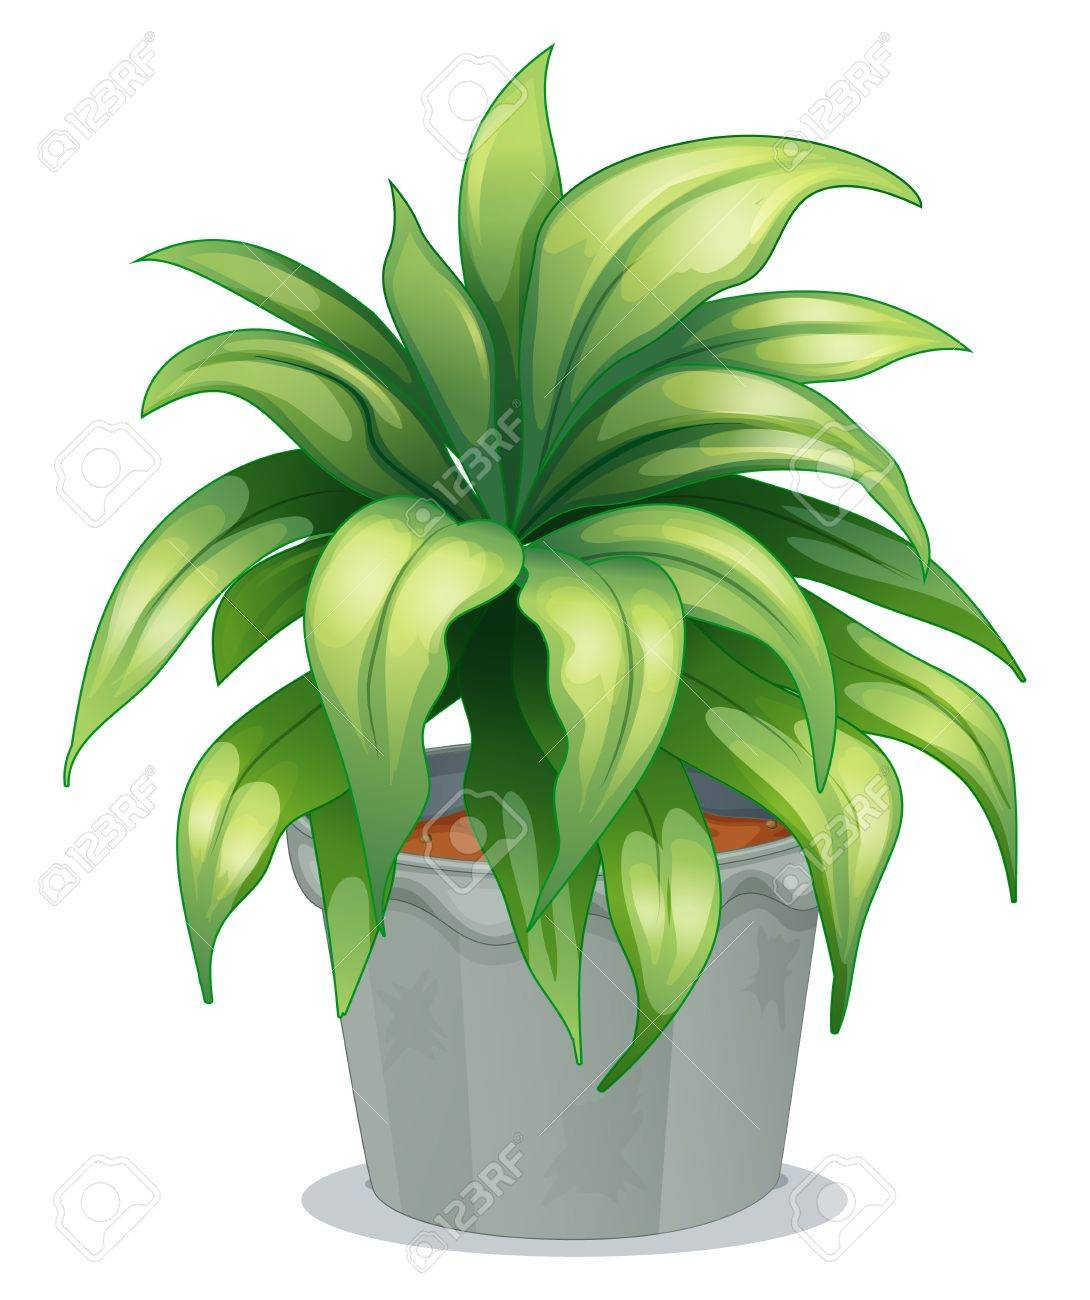 Illustration of a leafy plant on a white background - 17896406